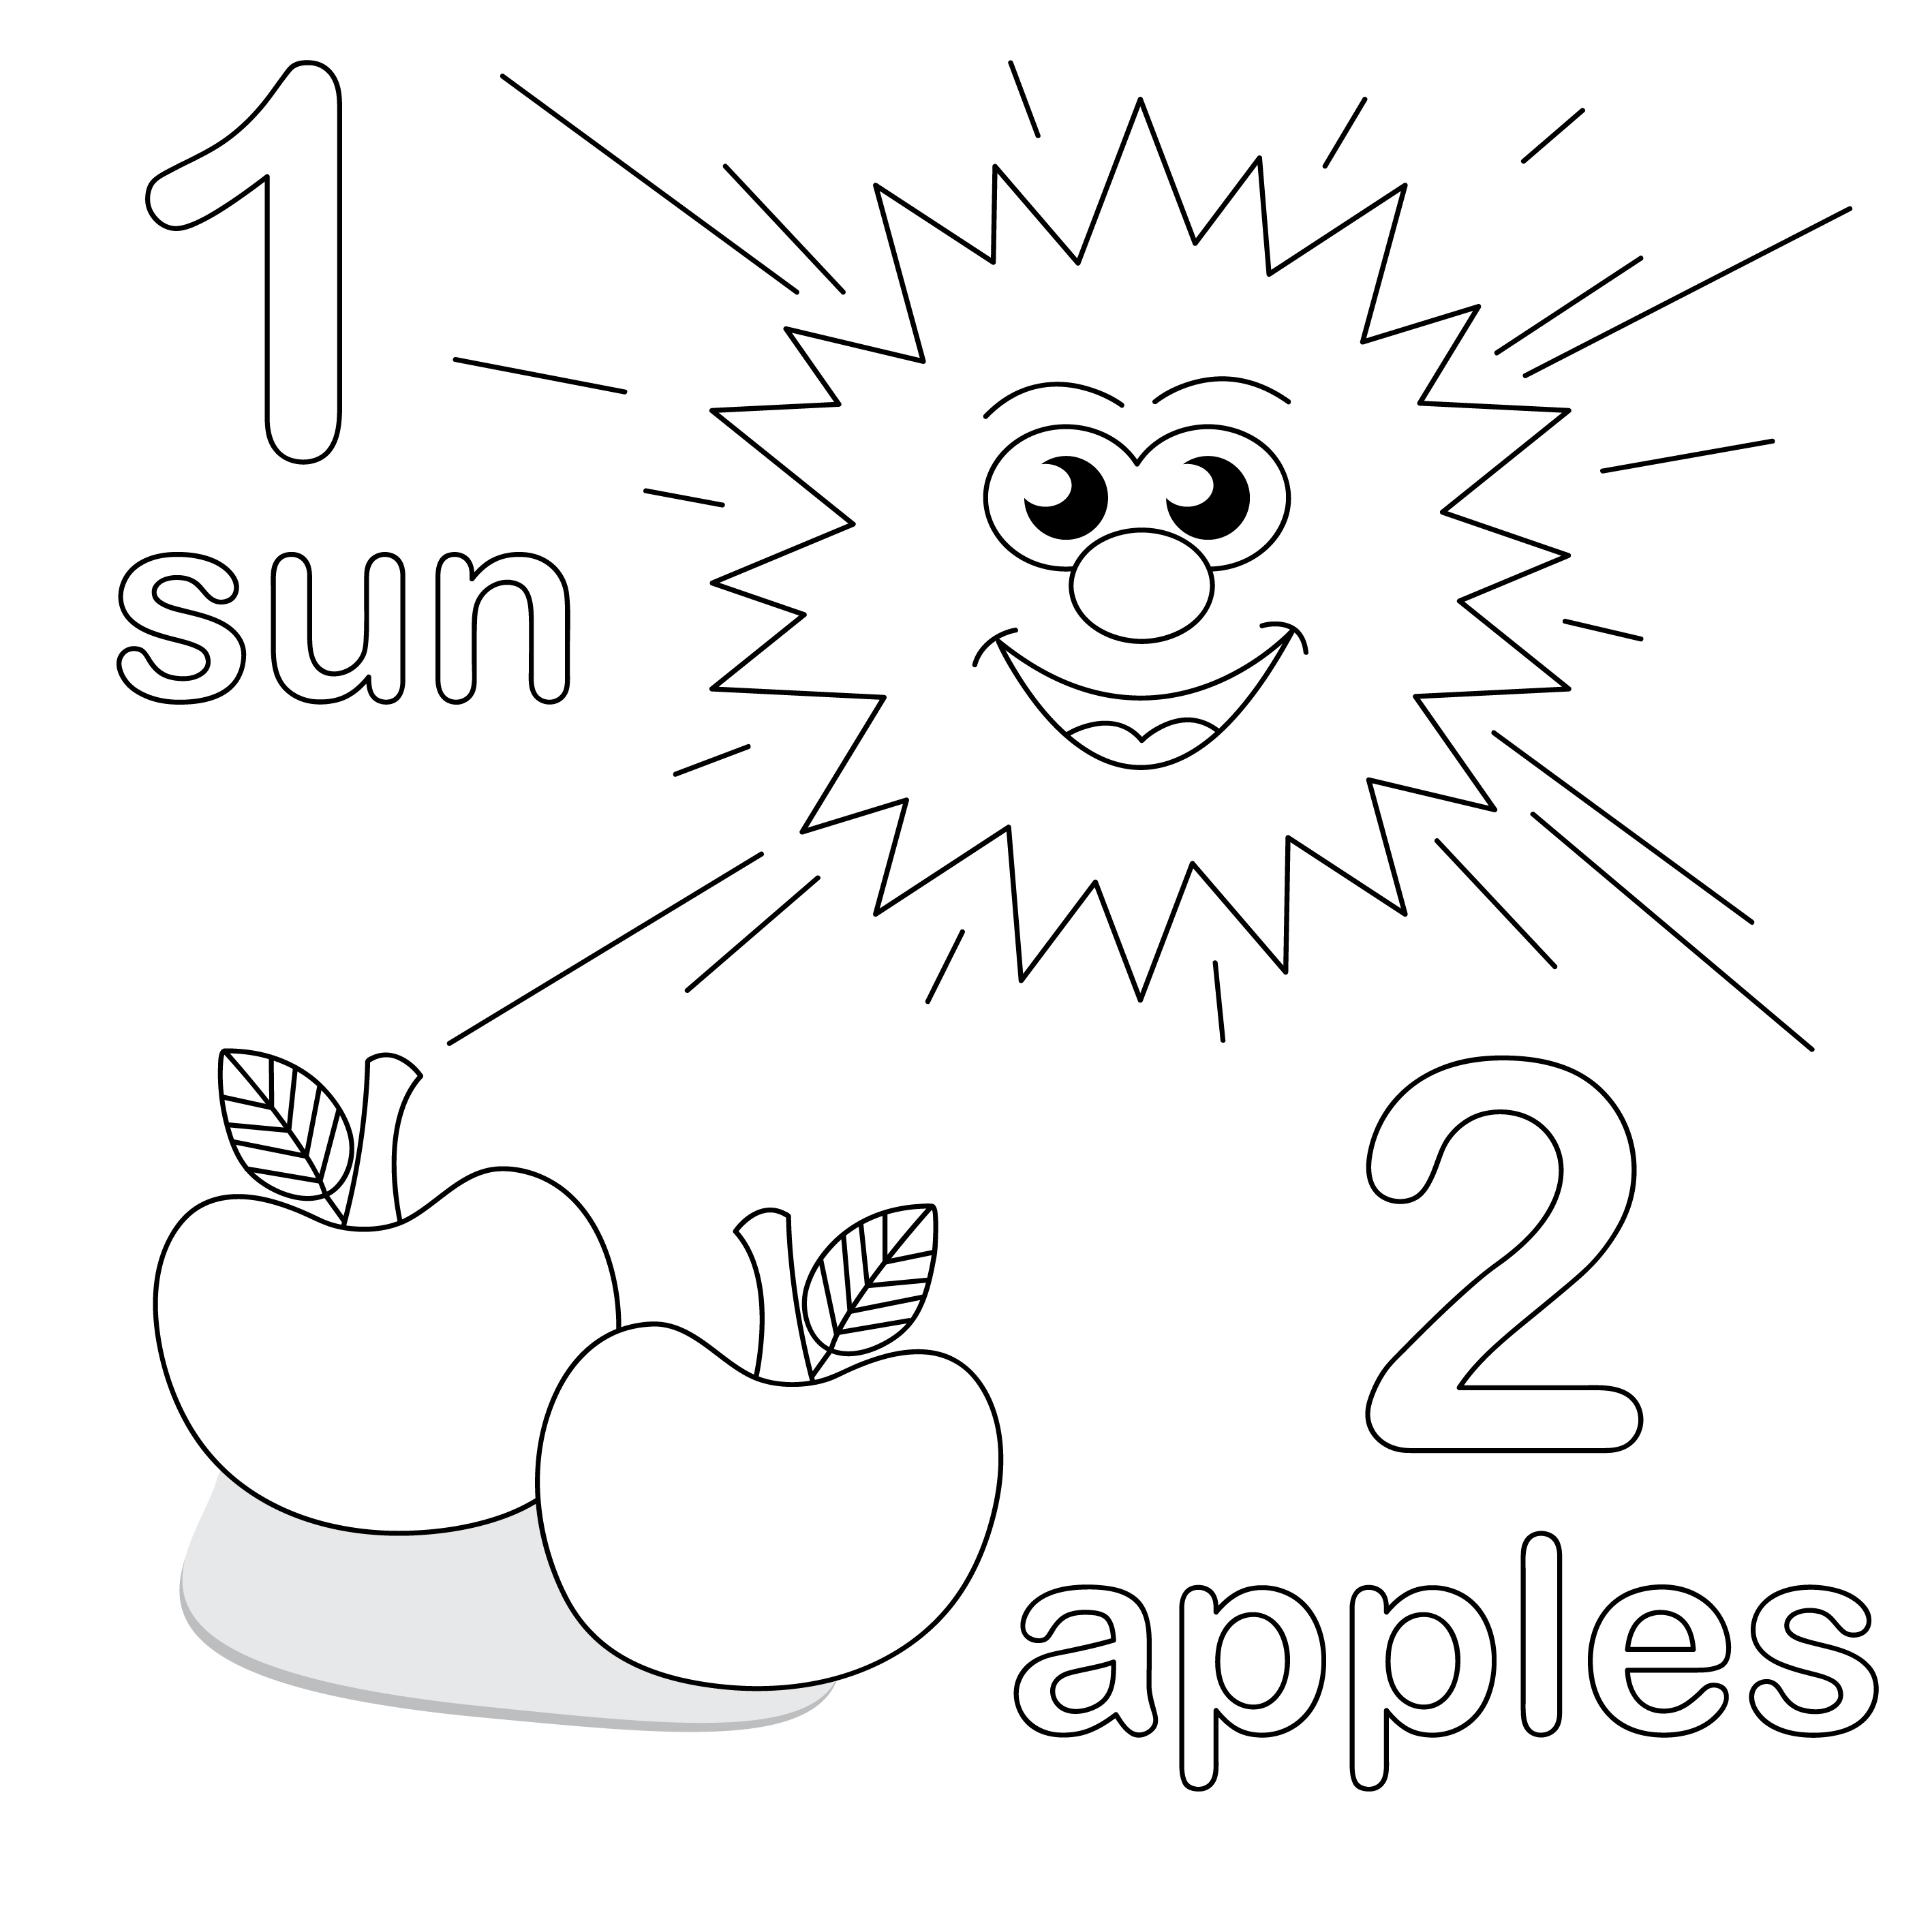 2835x2835 Number Coloring Page Trend Coloring Pages Preschool